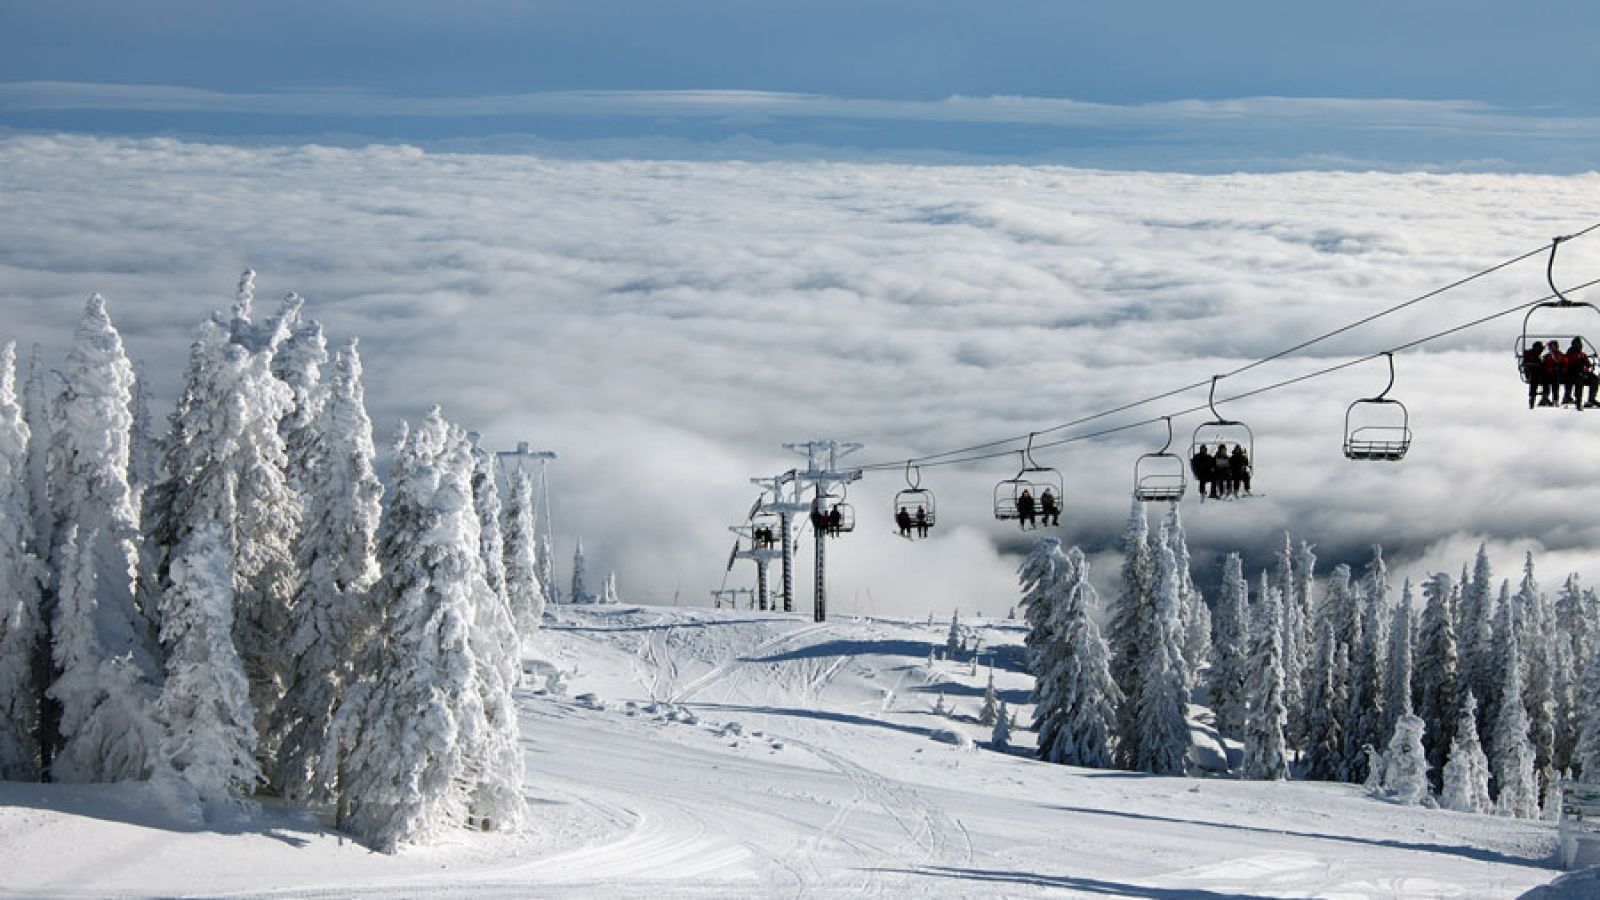 The resort offers 7 chairlifts.